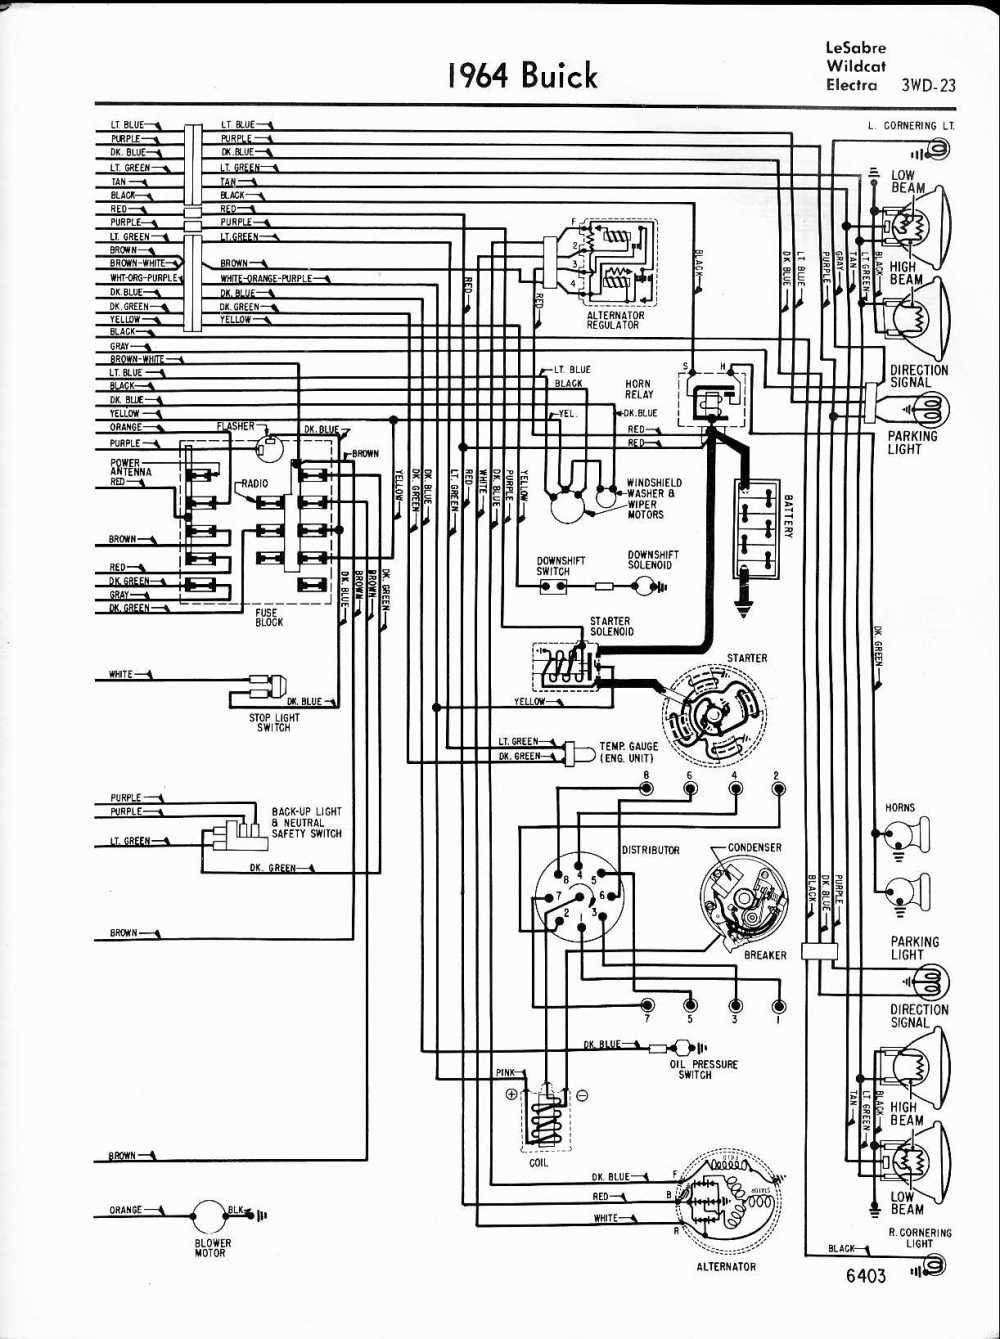 medium resolution of buick wiring diagrams 1957 1965 arctic cat 250 wiring schematic 1964 lesabre wildcat electra